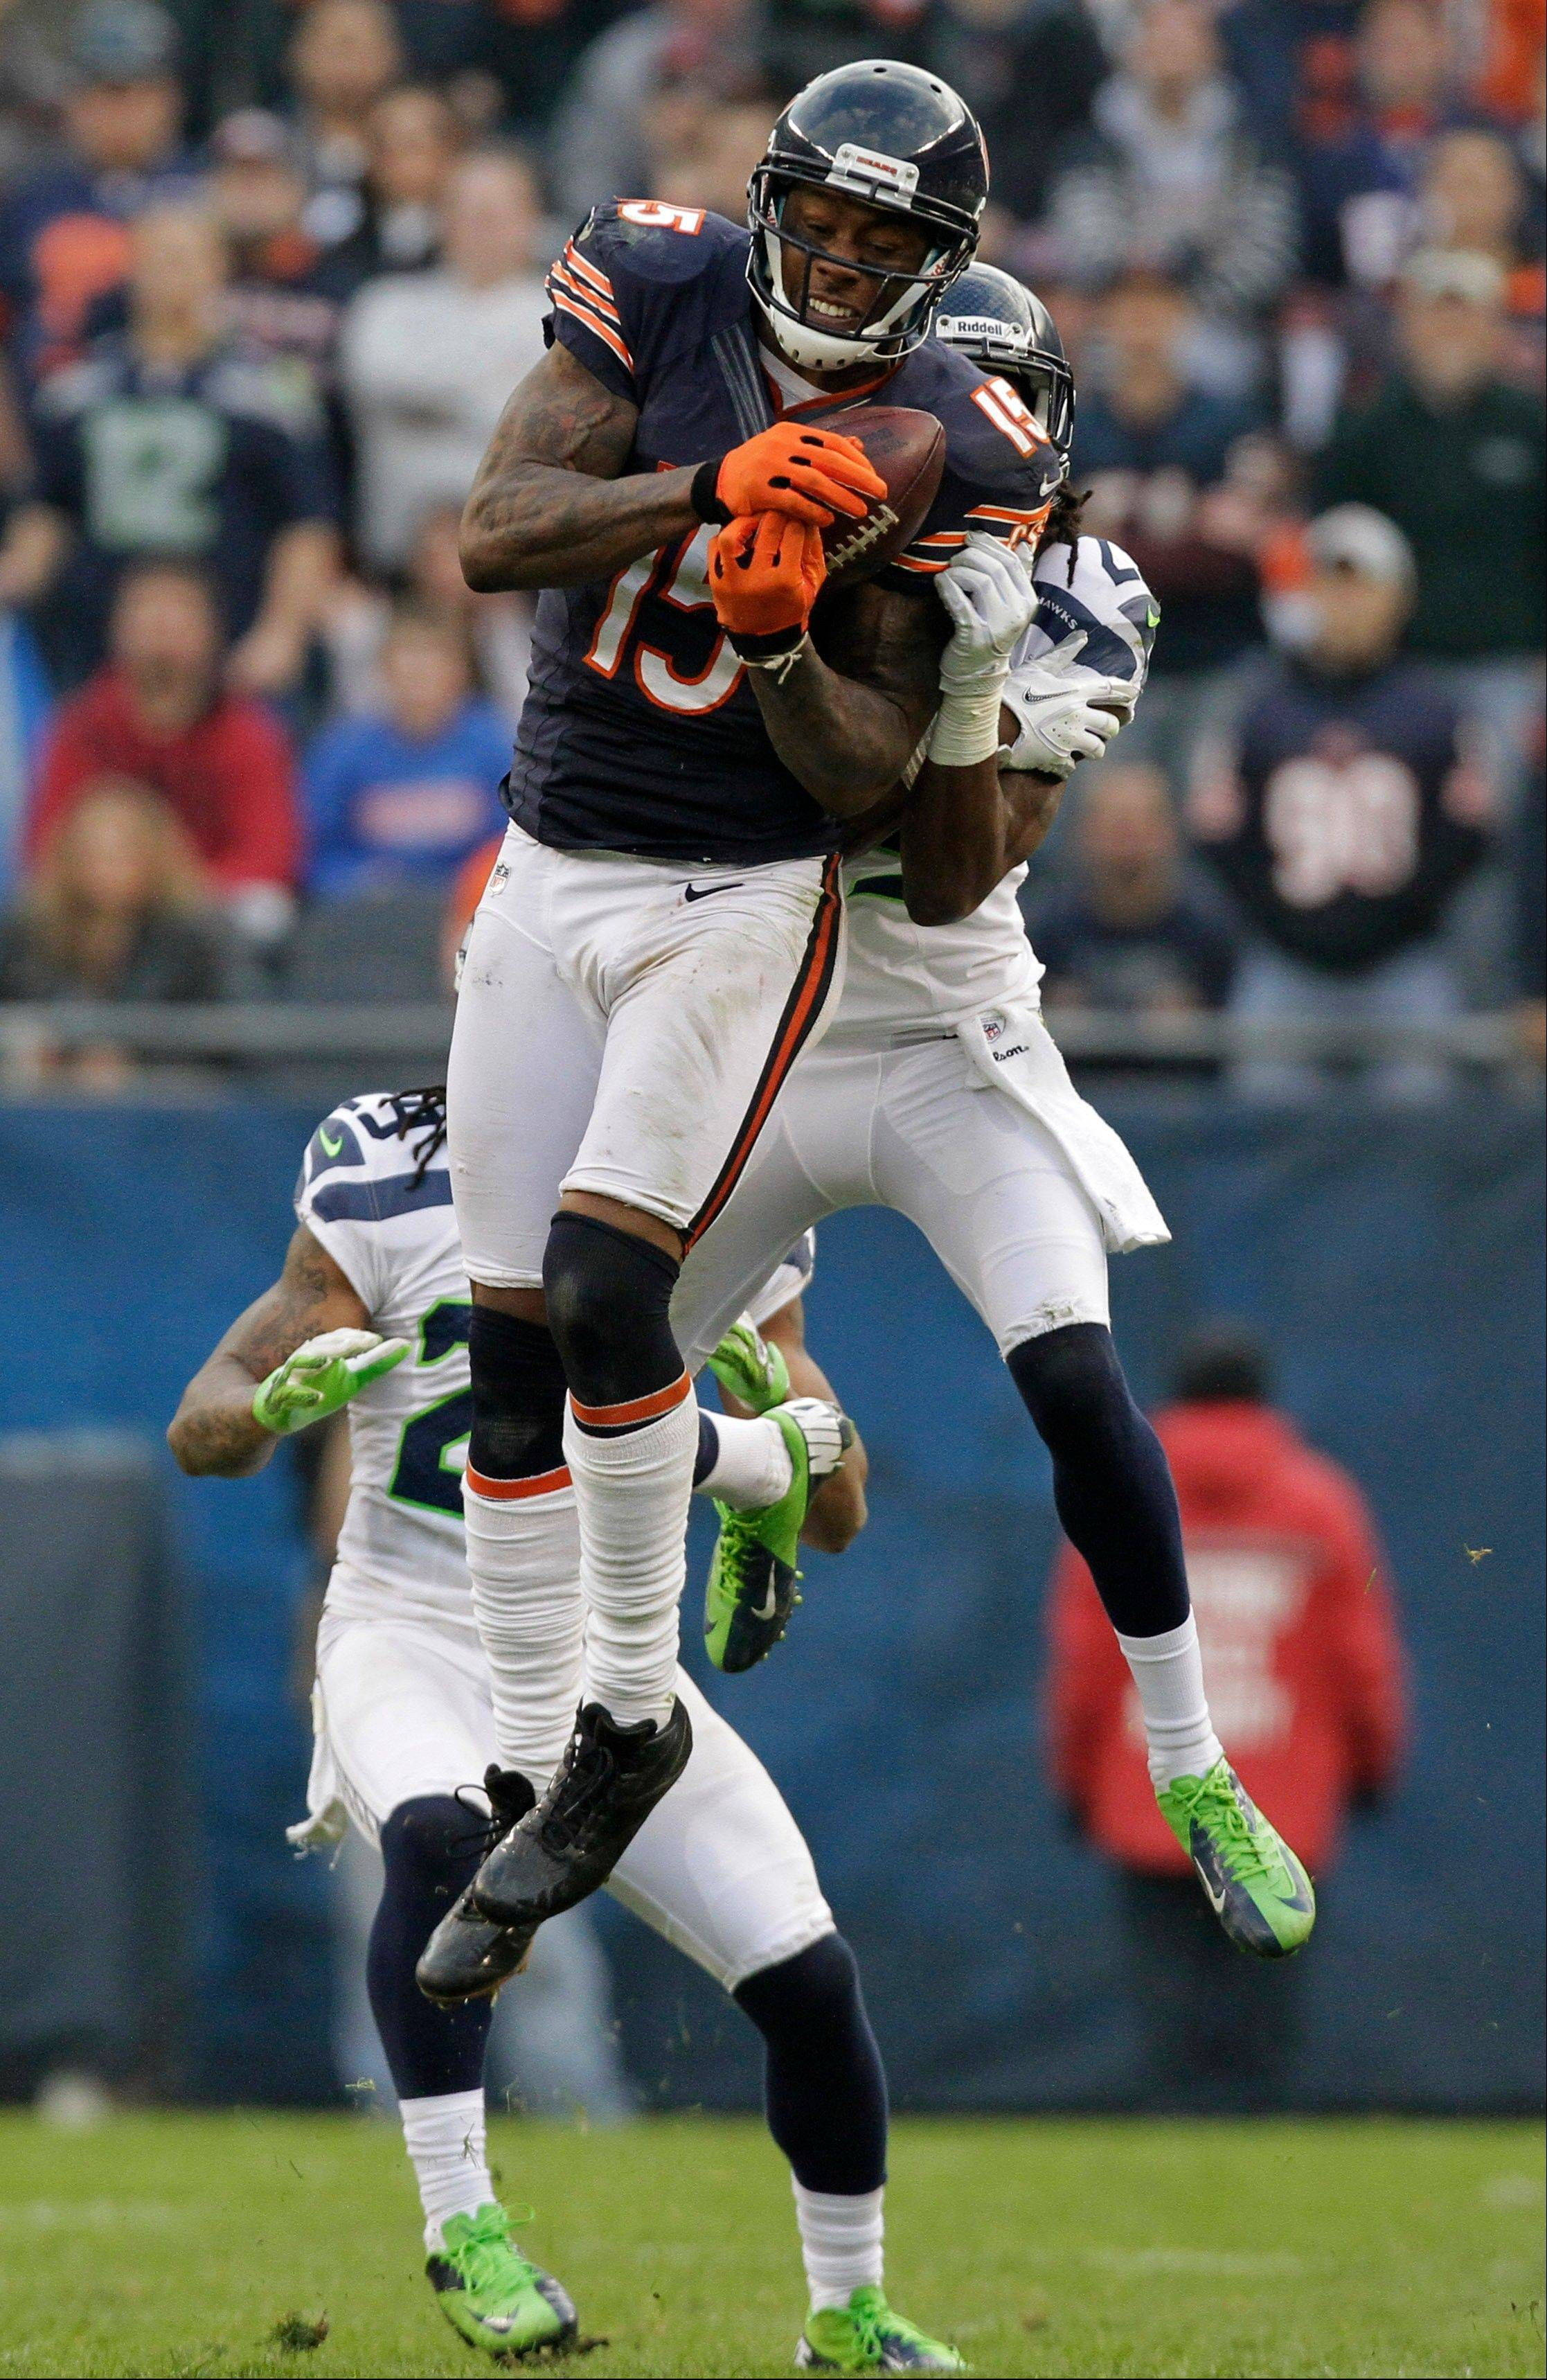 Brandon Marshall makes a catch against Seattle Seahawks cornerback Richard Sherman (25) in the second half of an NFL football game in Chicago, Sunday, Dec. 2, 2012. The catch was a key play in setting up a game-tying field goal to send the game into overtime.